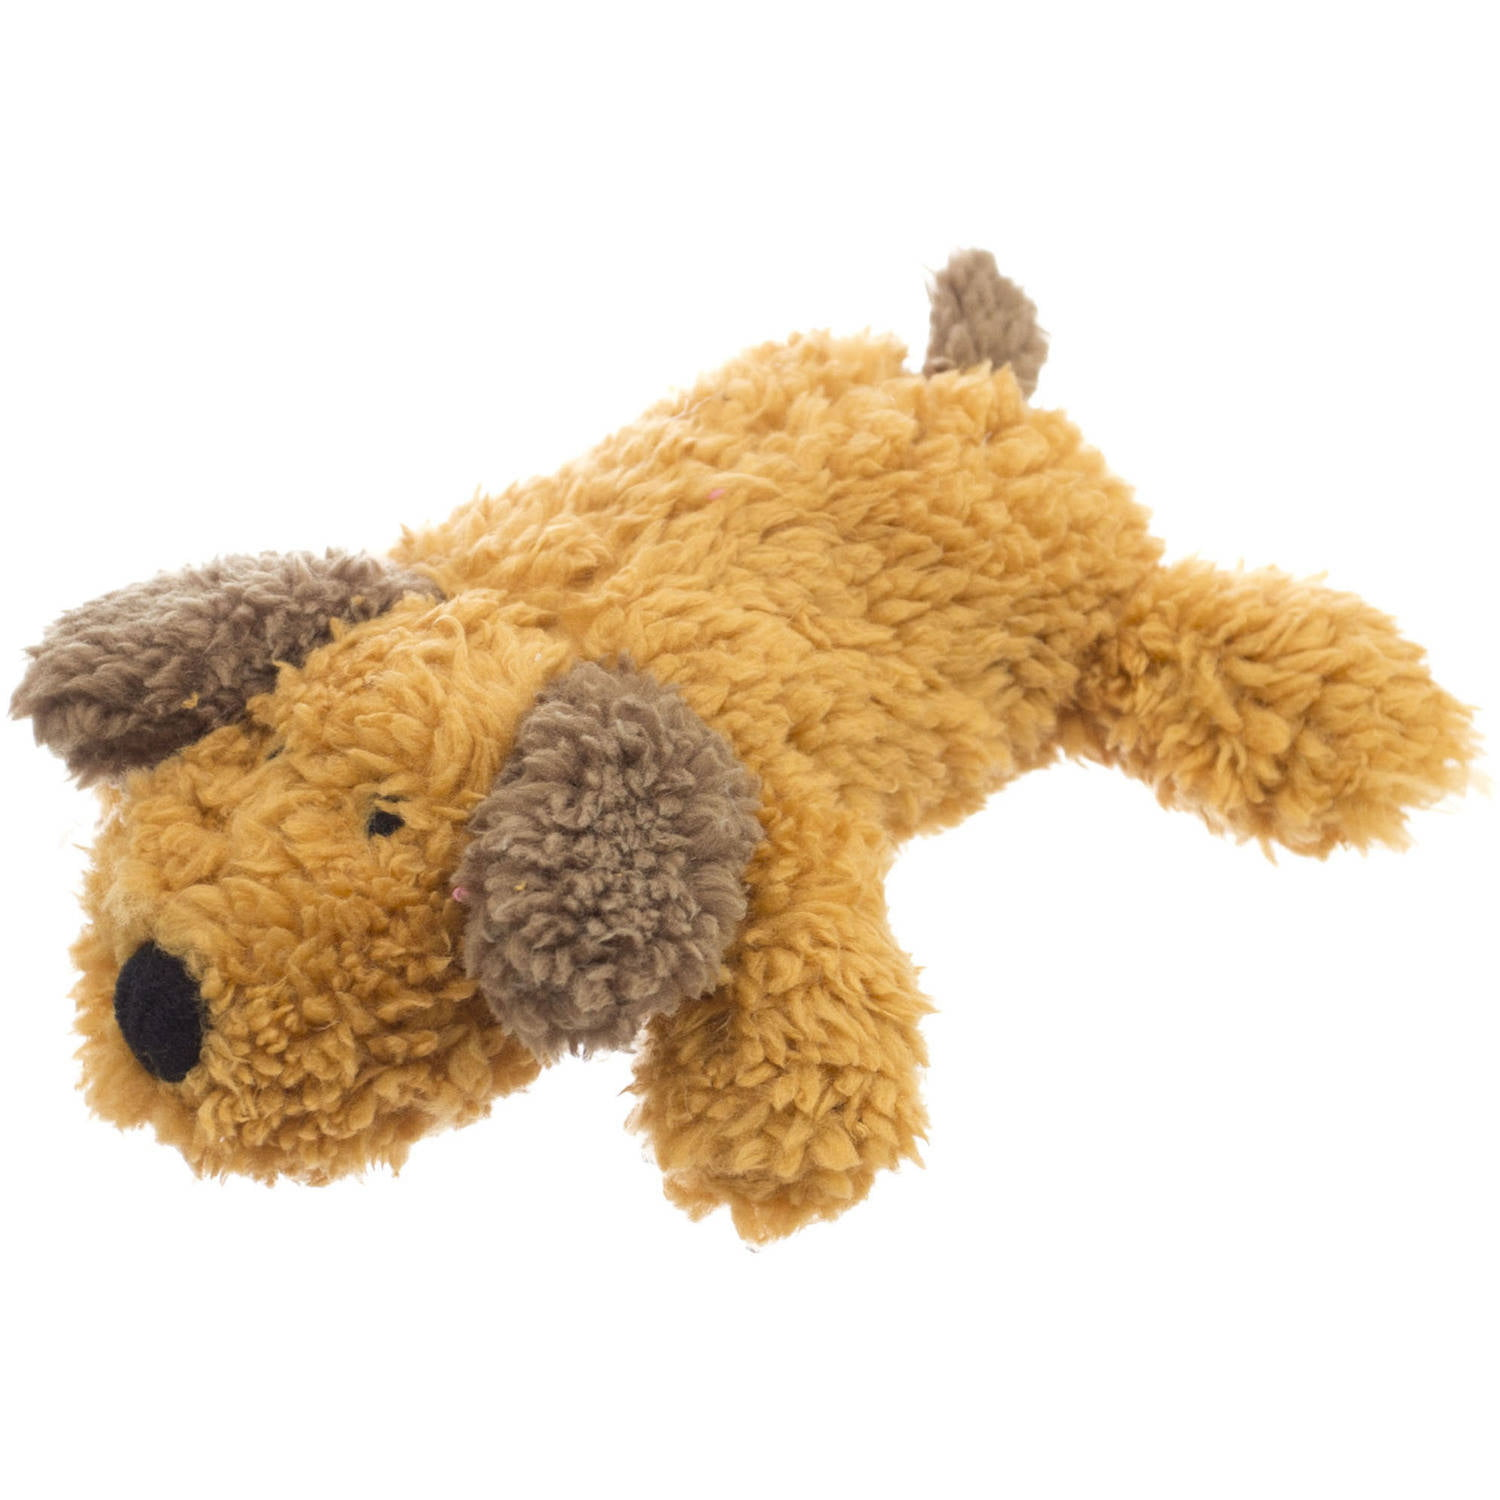 "6.5"" Super Soft Squeaky Dog Toy, Brown Puppy by DAN-DEE INTERNATIONAL LTD"